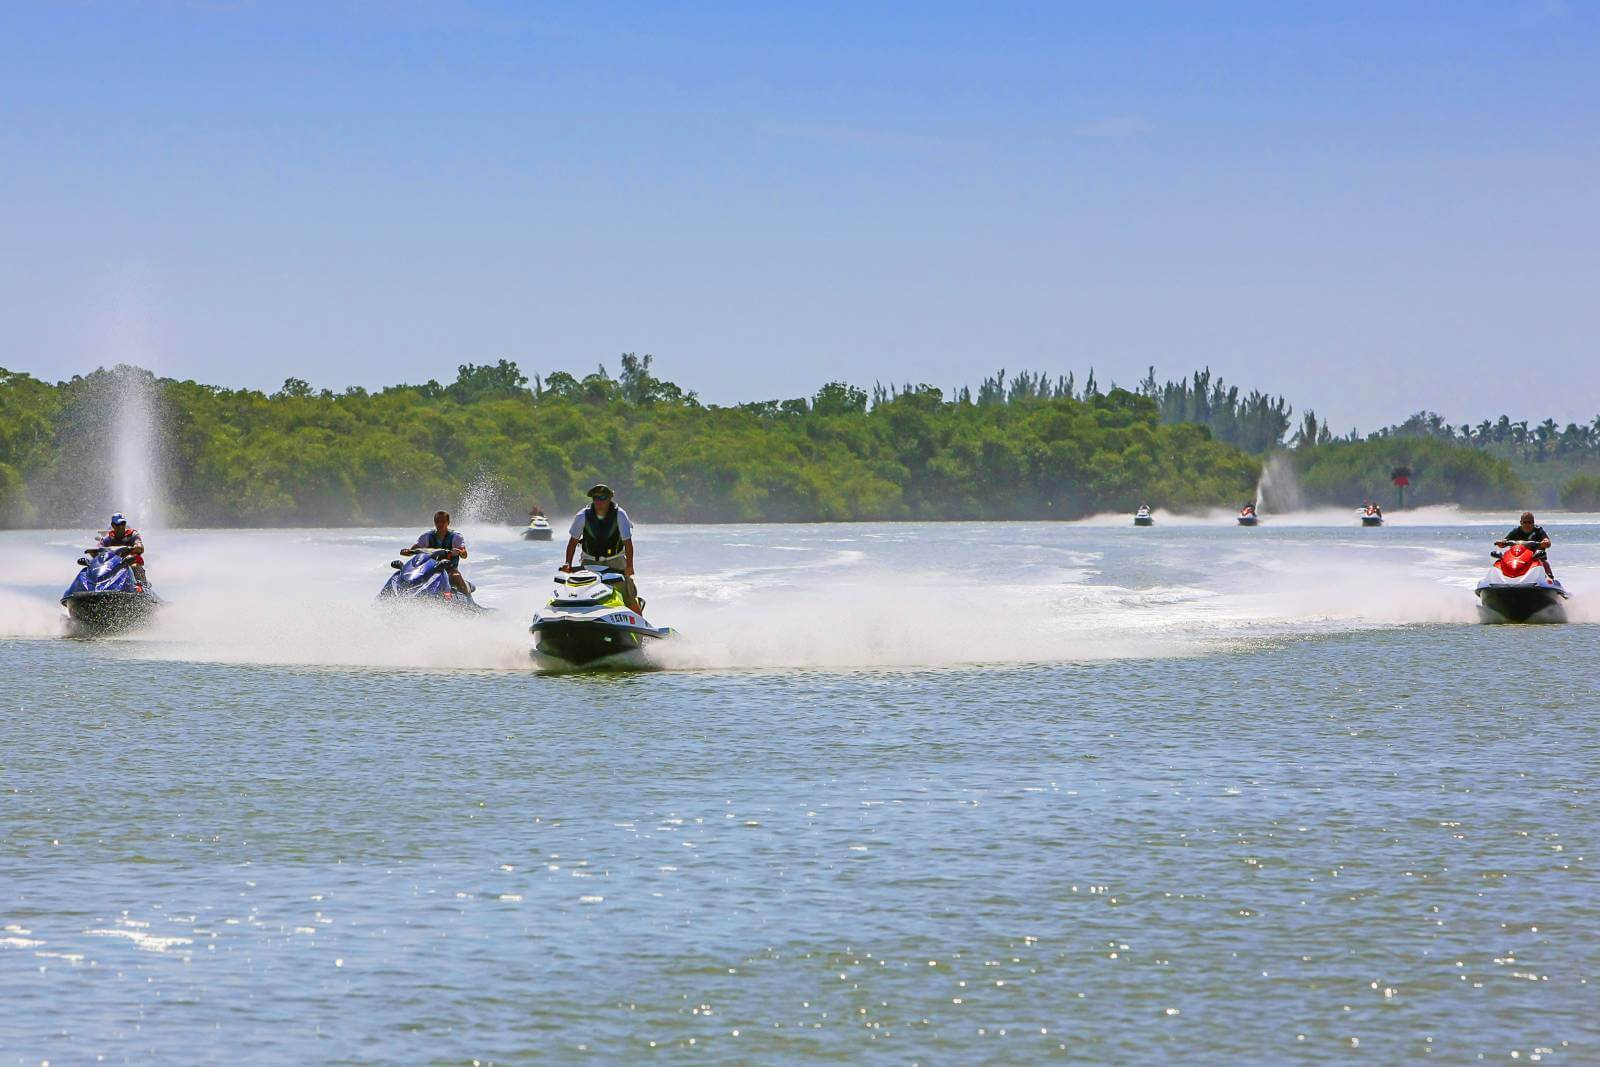 Group of jet skis on the water Naples and Marco Island, Florida. Experience the natural beauty of Naples and Marco Island, Florida with a WaveRunner tour.